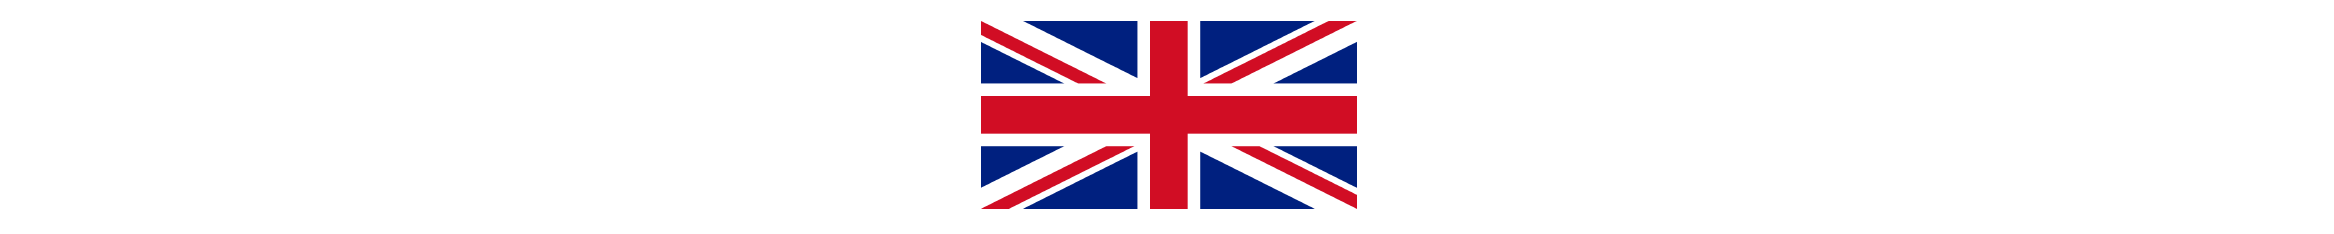 Make in the United Kingdom-37.png